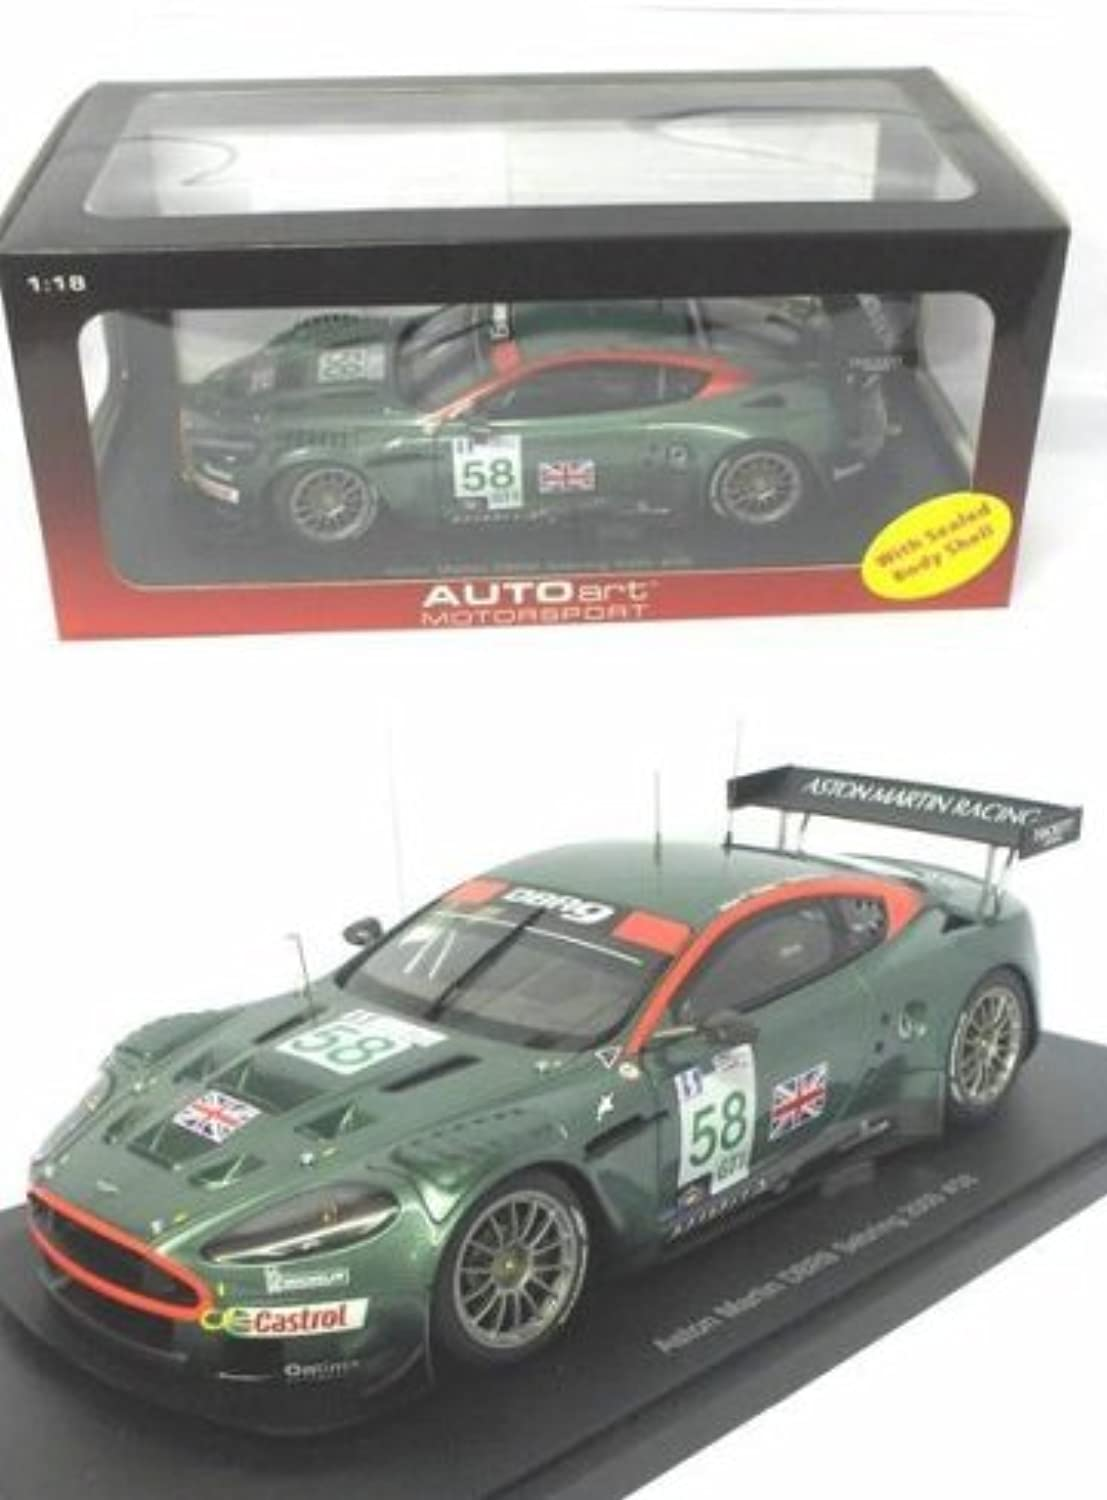 Diecast Model Aston Martin DBR9 Le Mans Number 58 (2005) in Green (1 18 scale)